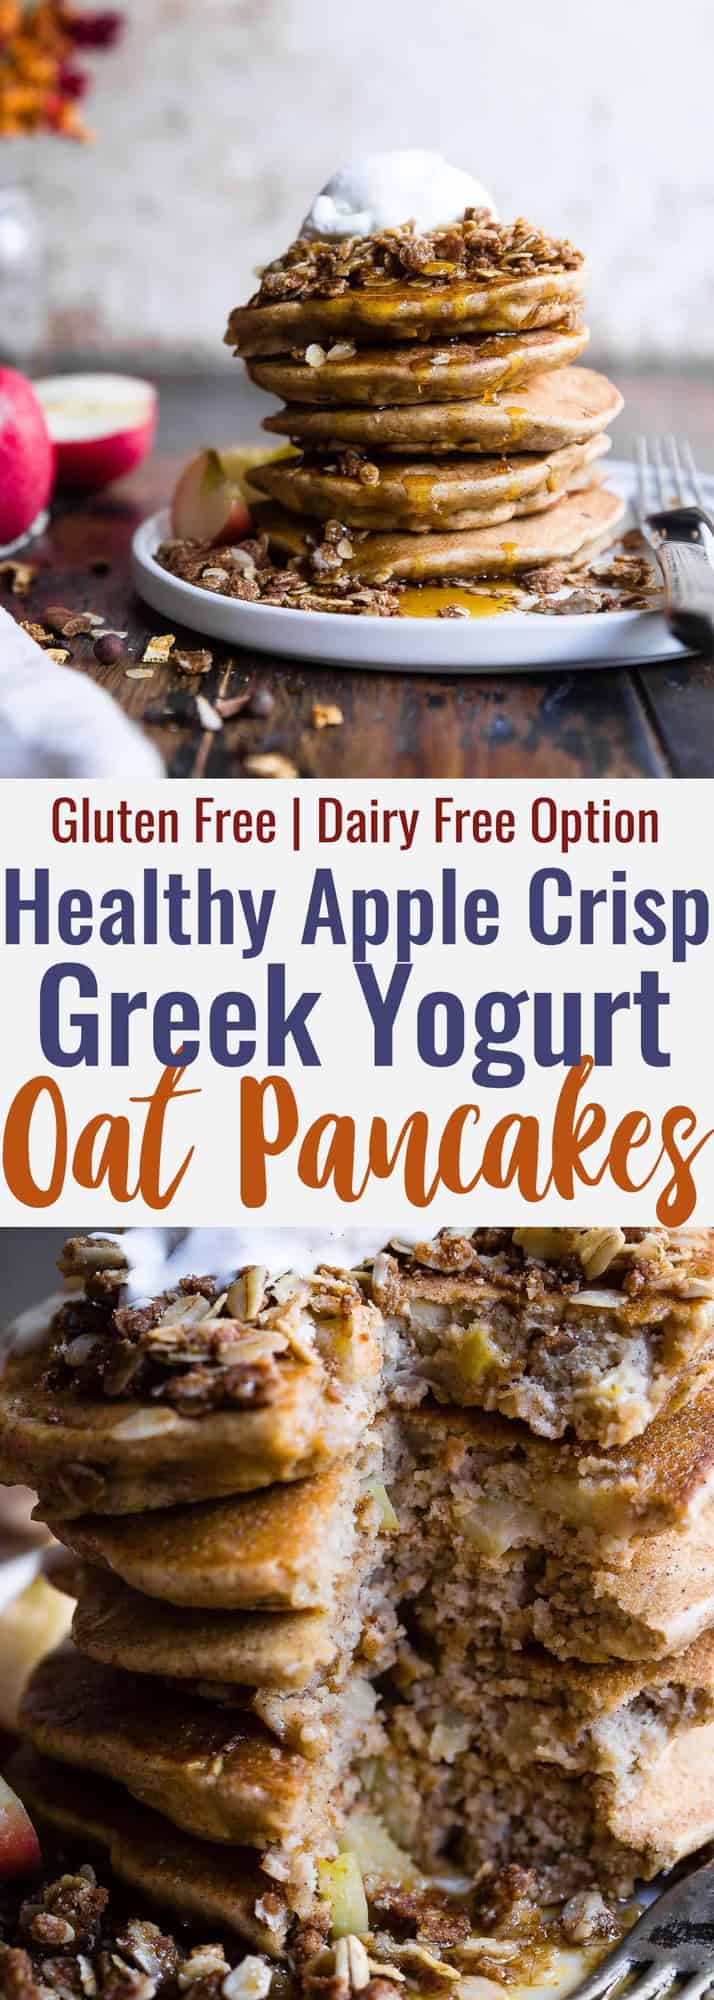 Apple Crisp Greek Yogurt Oatmeal Protein Pancakes - These Healthy Oatmeal Protein Pancakes with Greek Yogurt taste like having apple crisp for breakfast! Gluten free, made from simple, wholesome ingredients and SO thick and fluffy! | #Foodfaithfitness | #Glutenfree #Dairyfree #Greekyogurt #Healthy #Pancakes